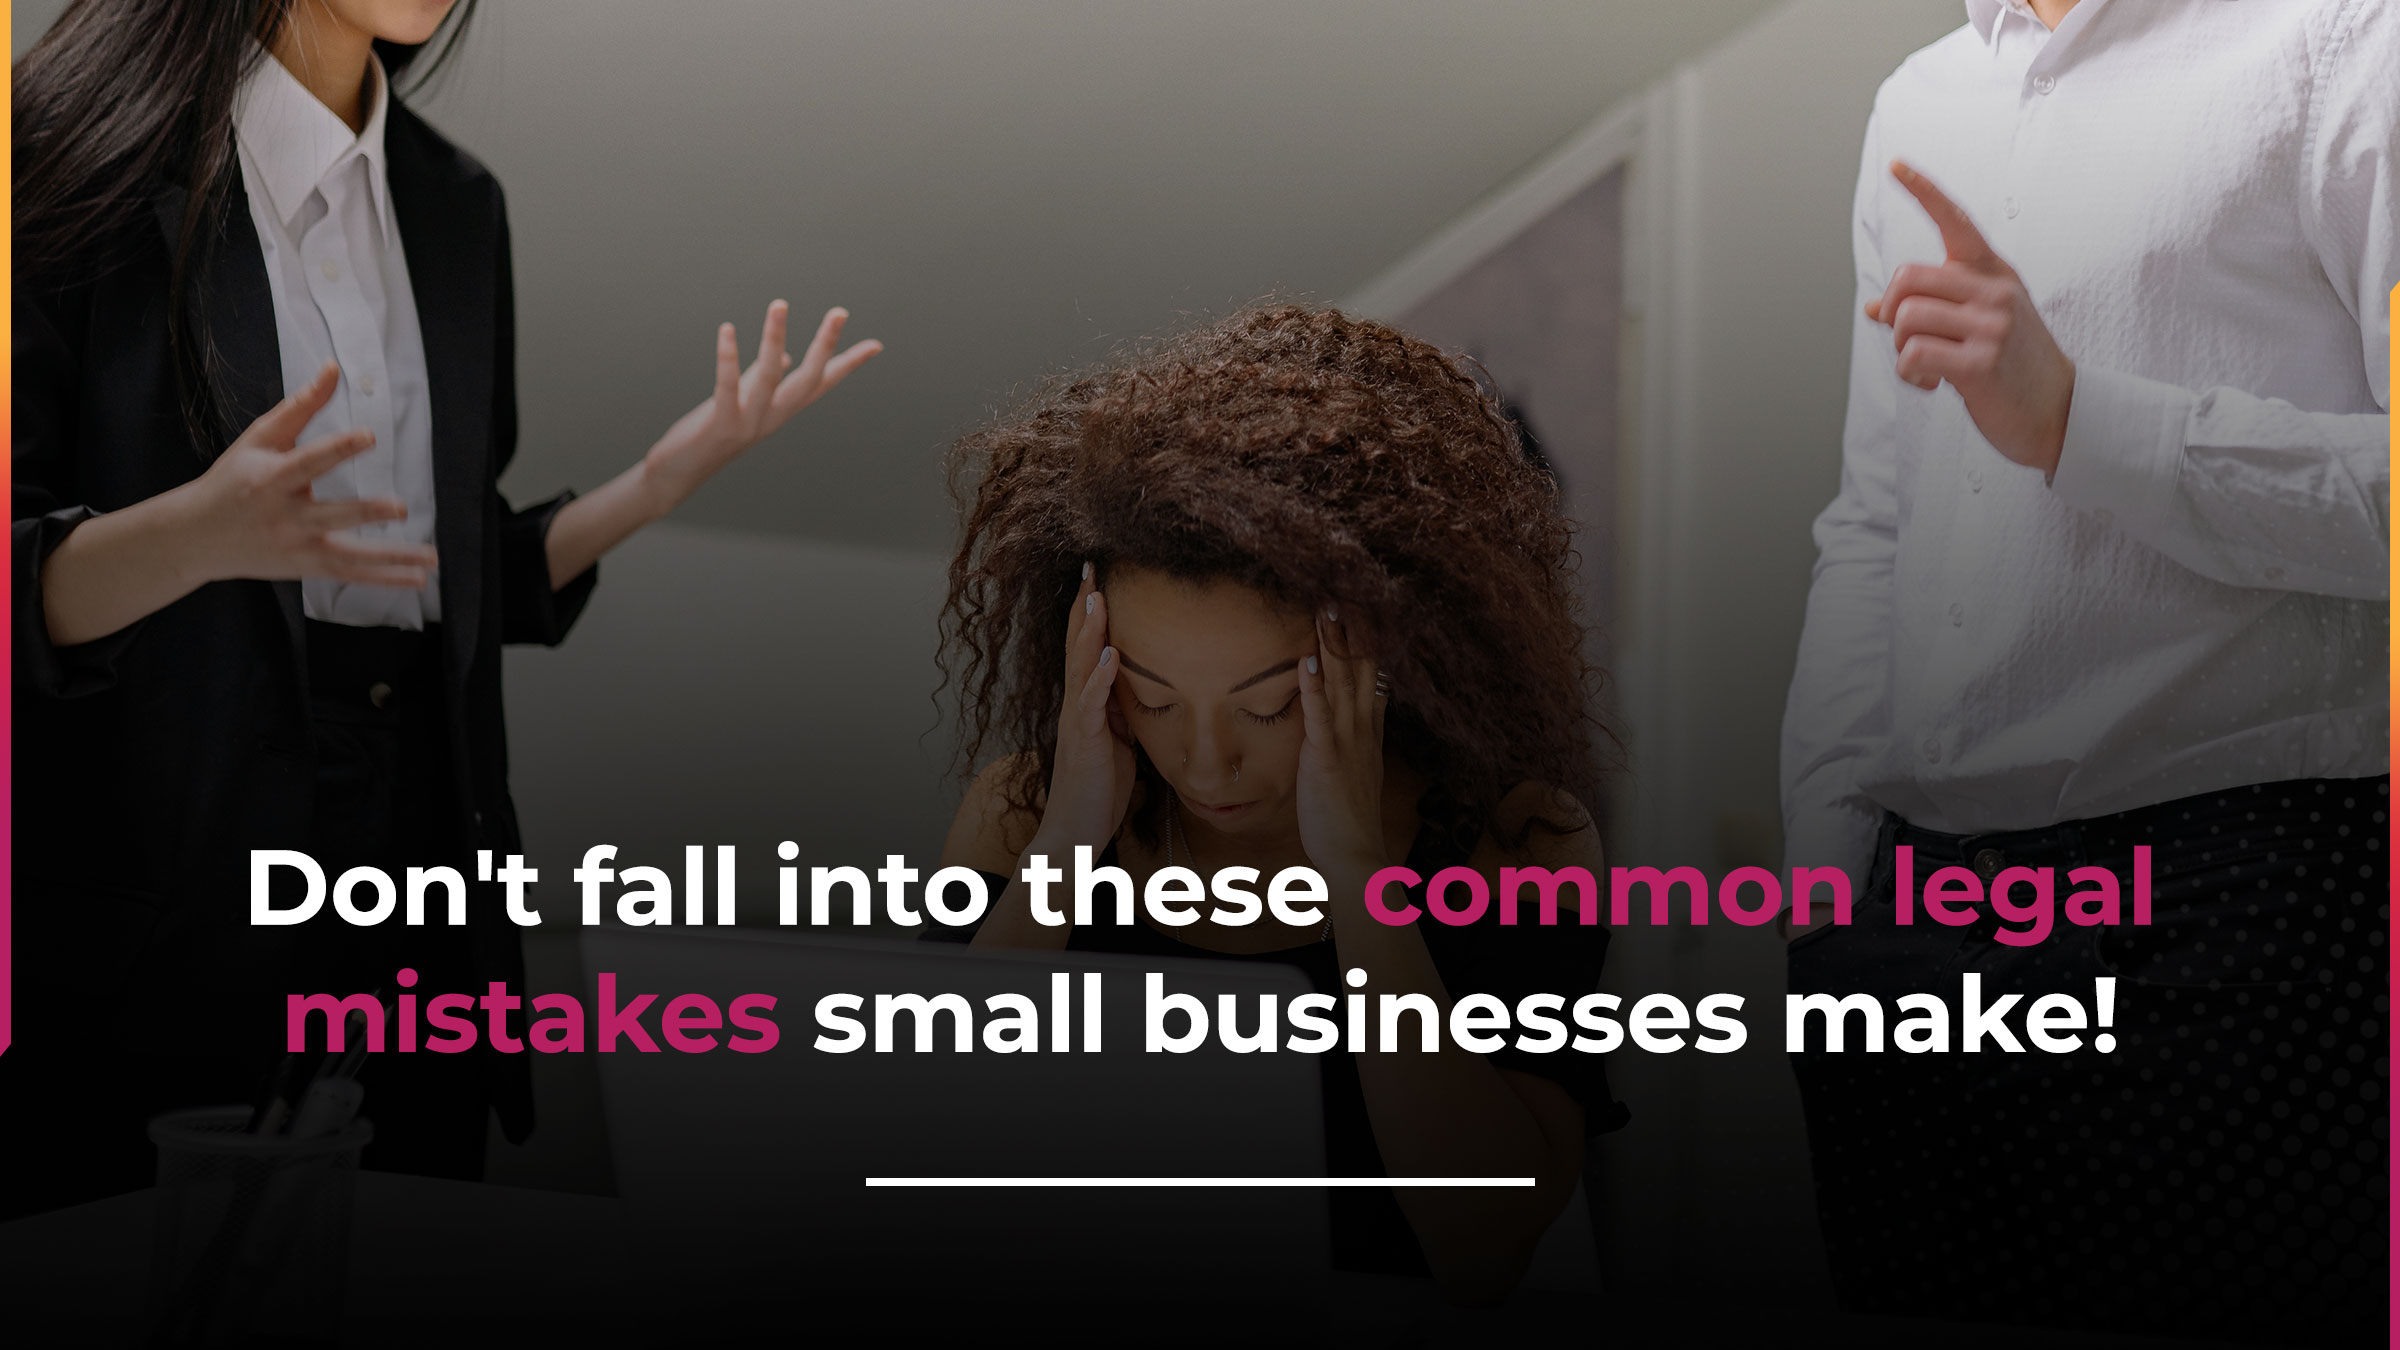 Top legal mistakes small business owners make (and how to avoid them)